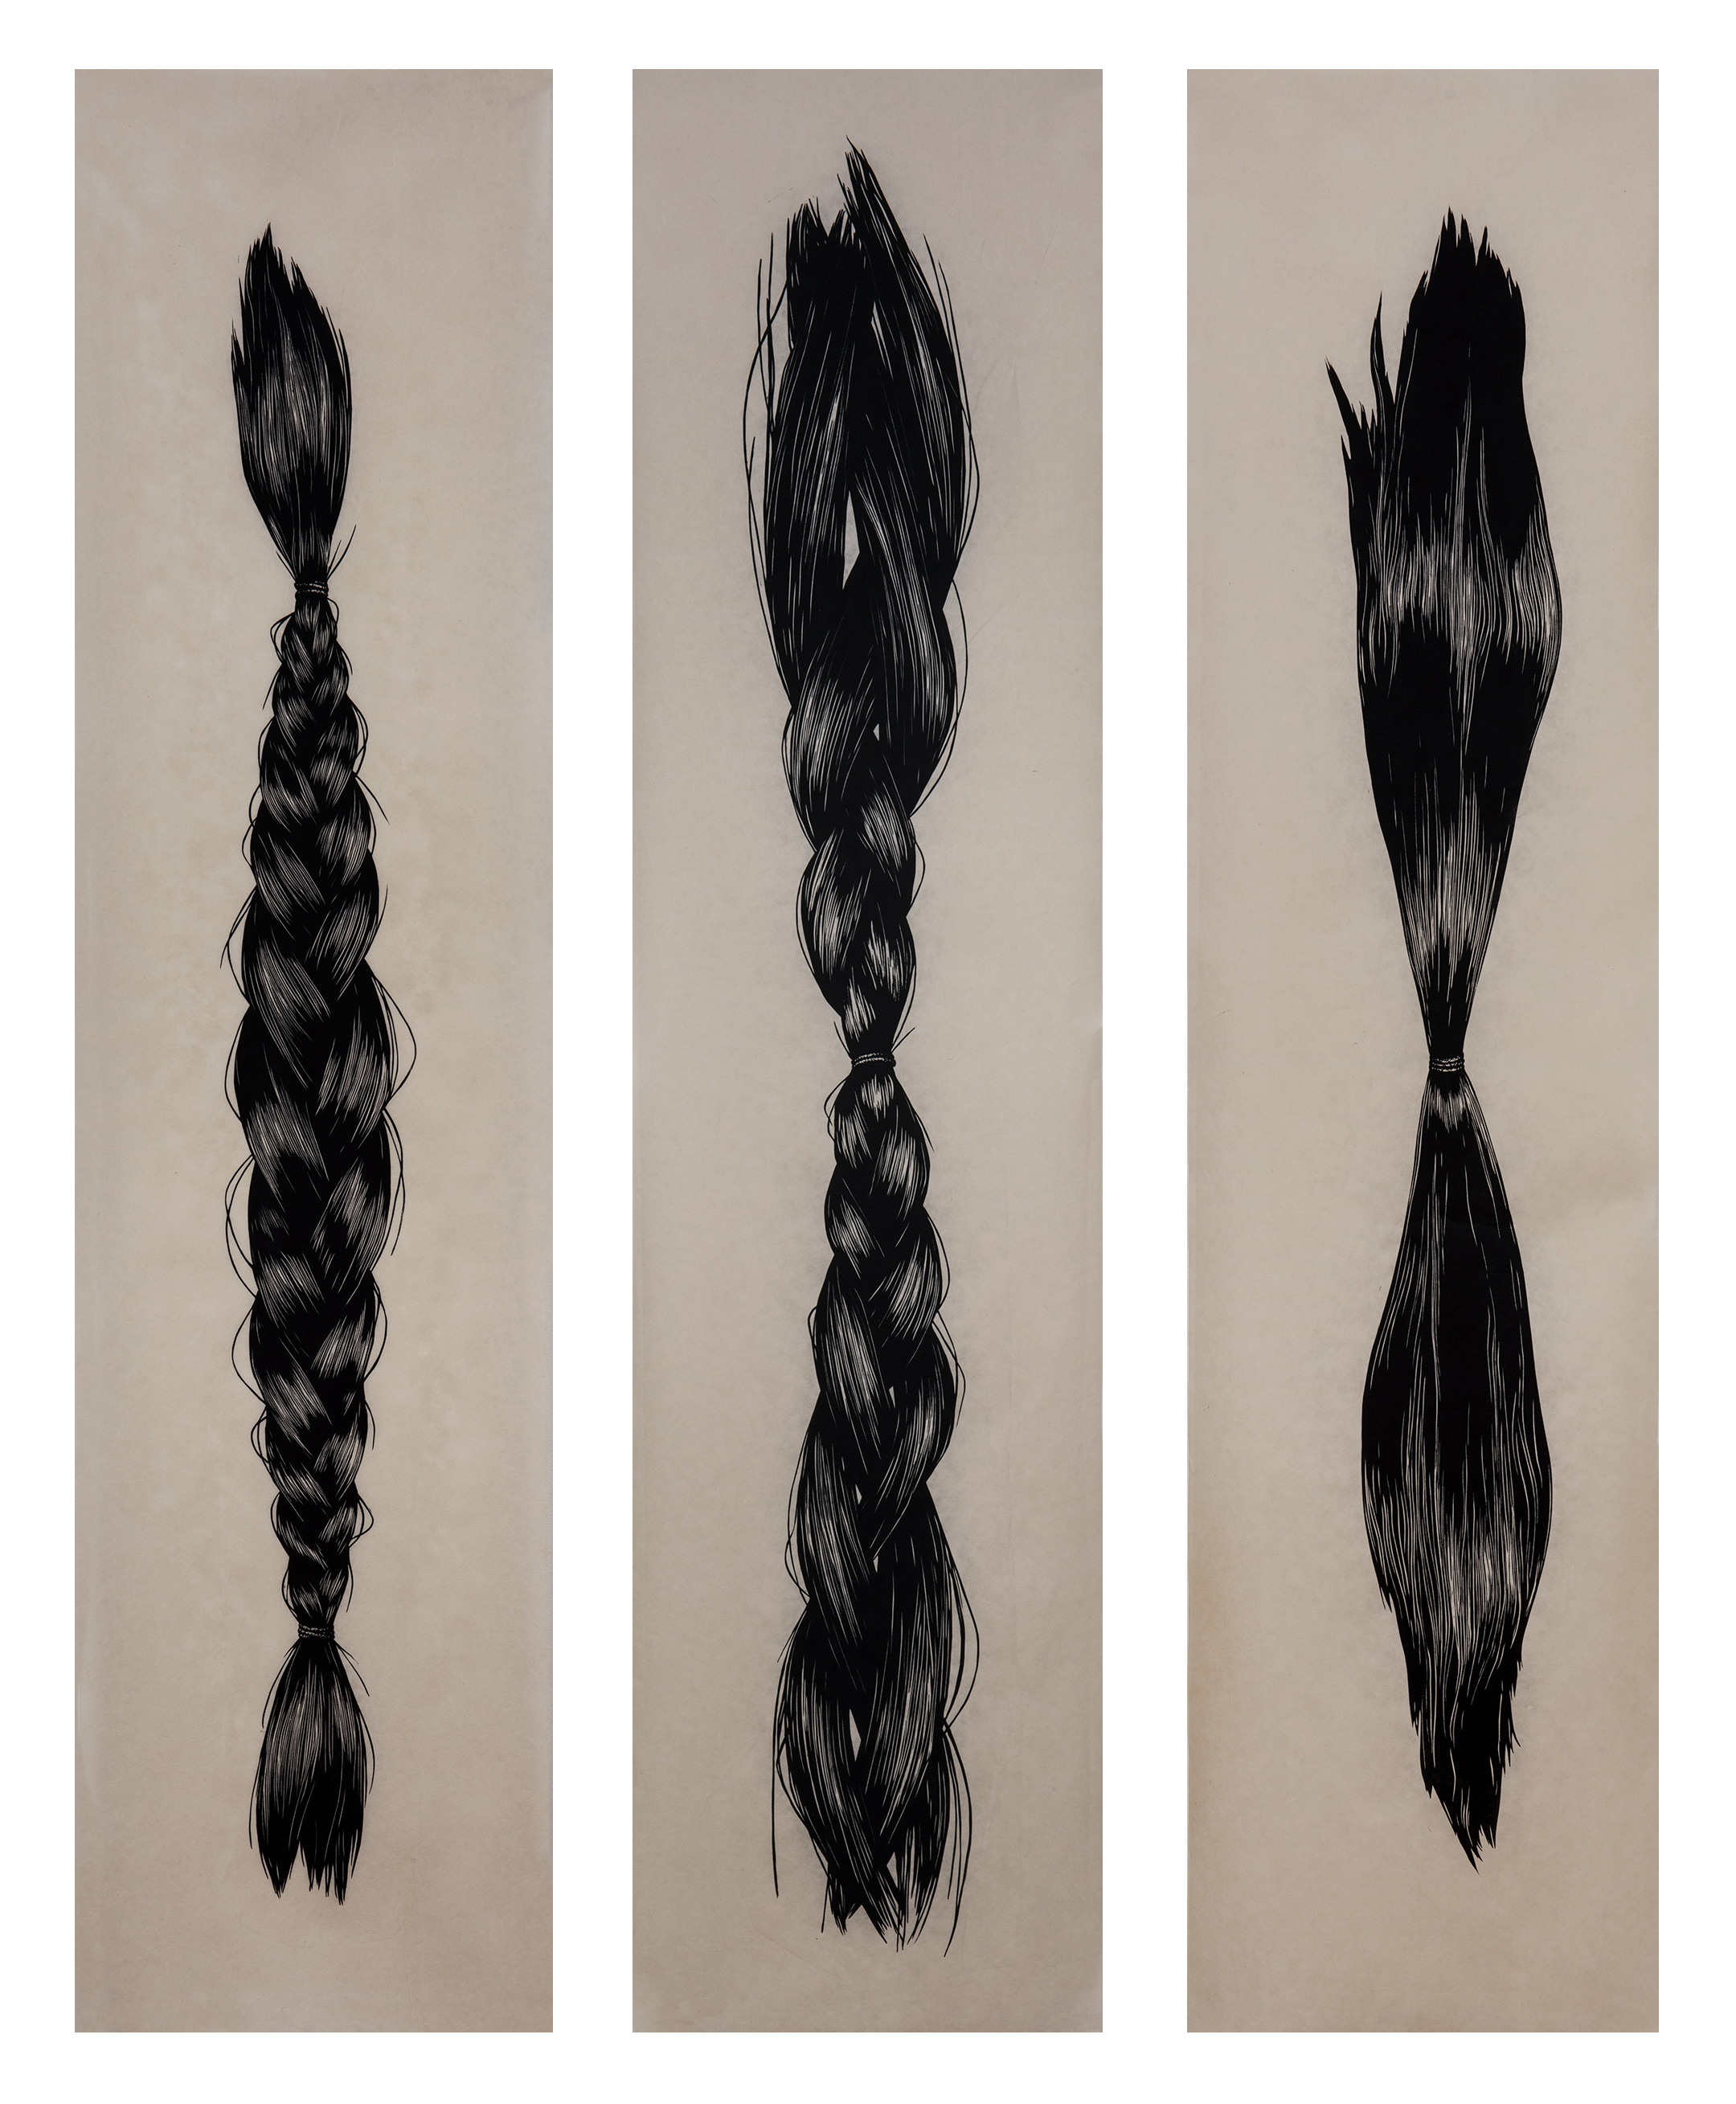 Hair in a braid, Loosening Braid, and Gathered Hair